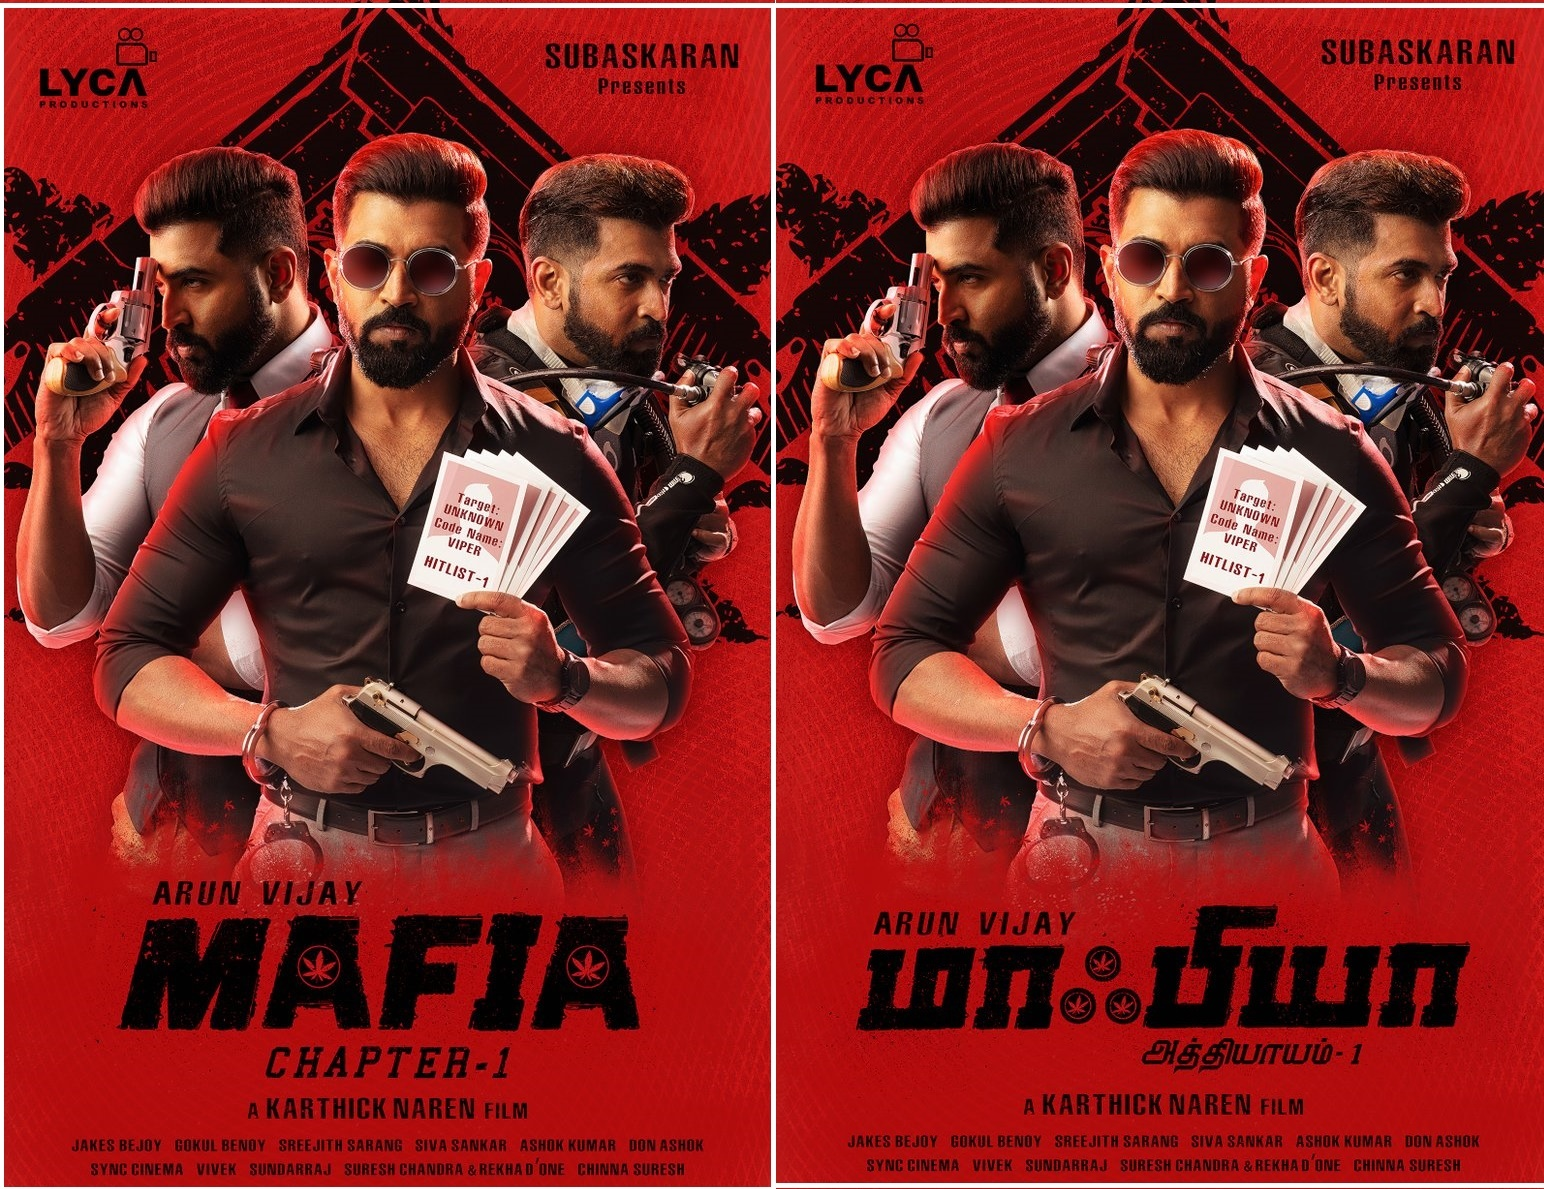 Arun Vijay's upcoming venture 'mafia' firstlook poster by lyca prodution